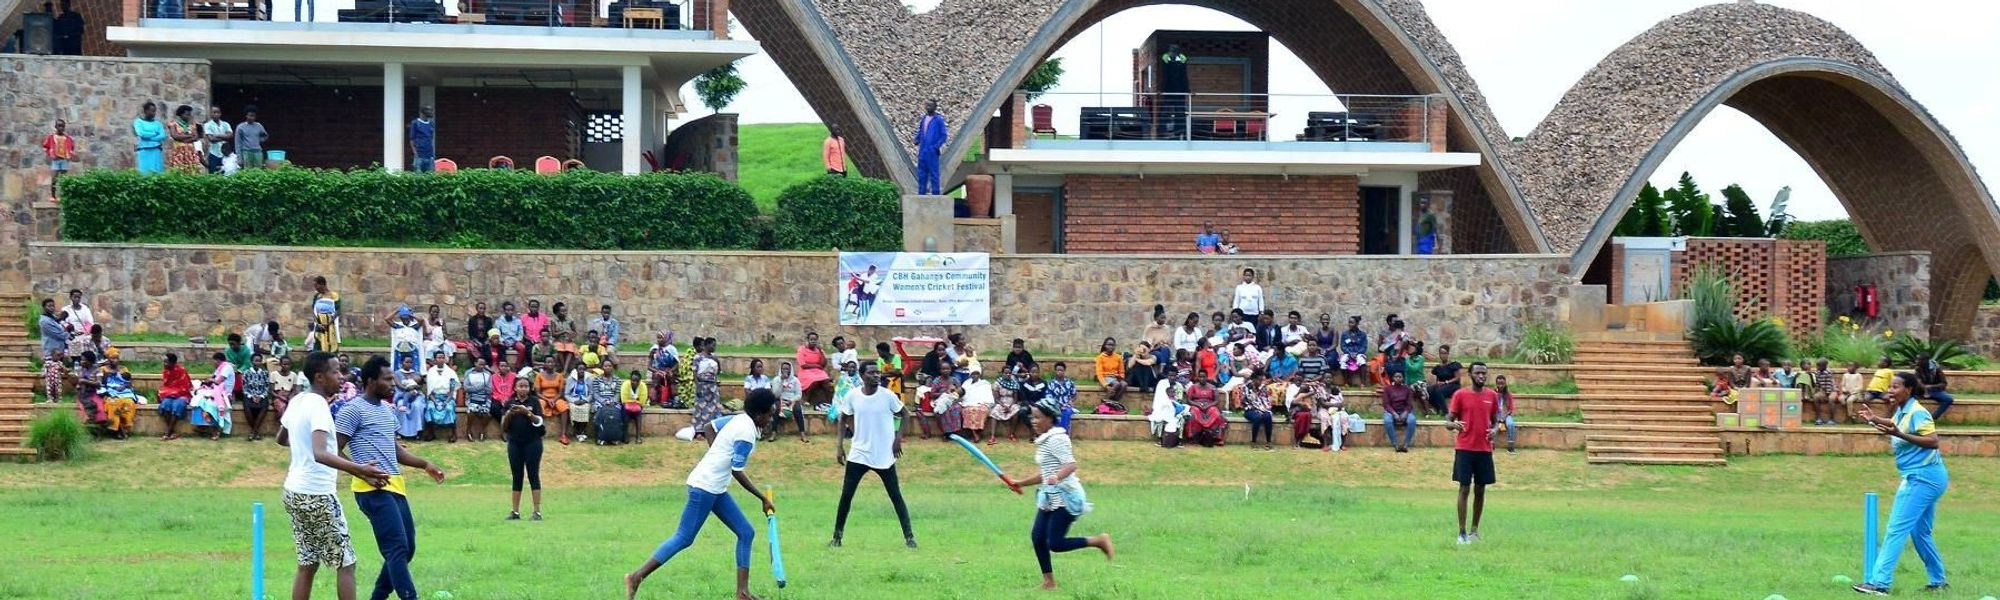 A weekend of fun and competition at the Gahanga Cricket Stadium